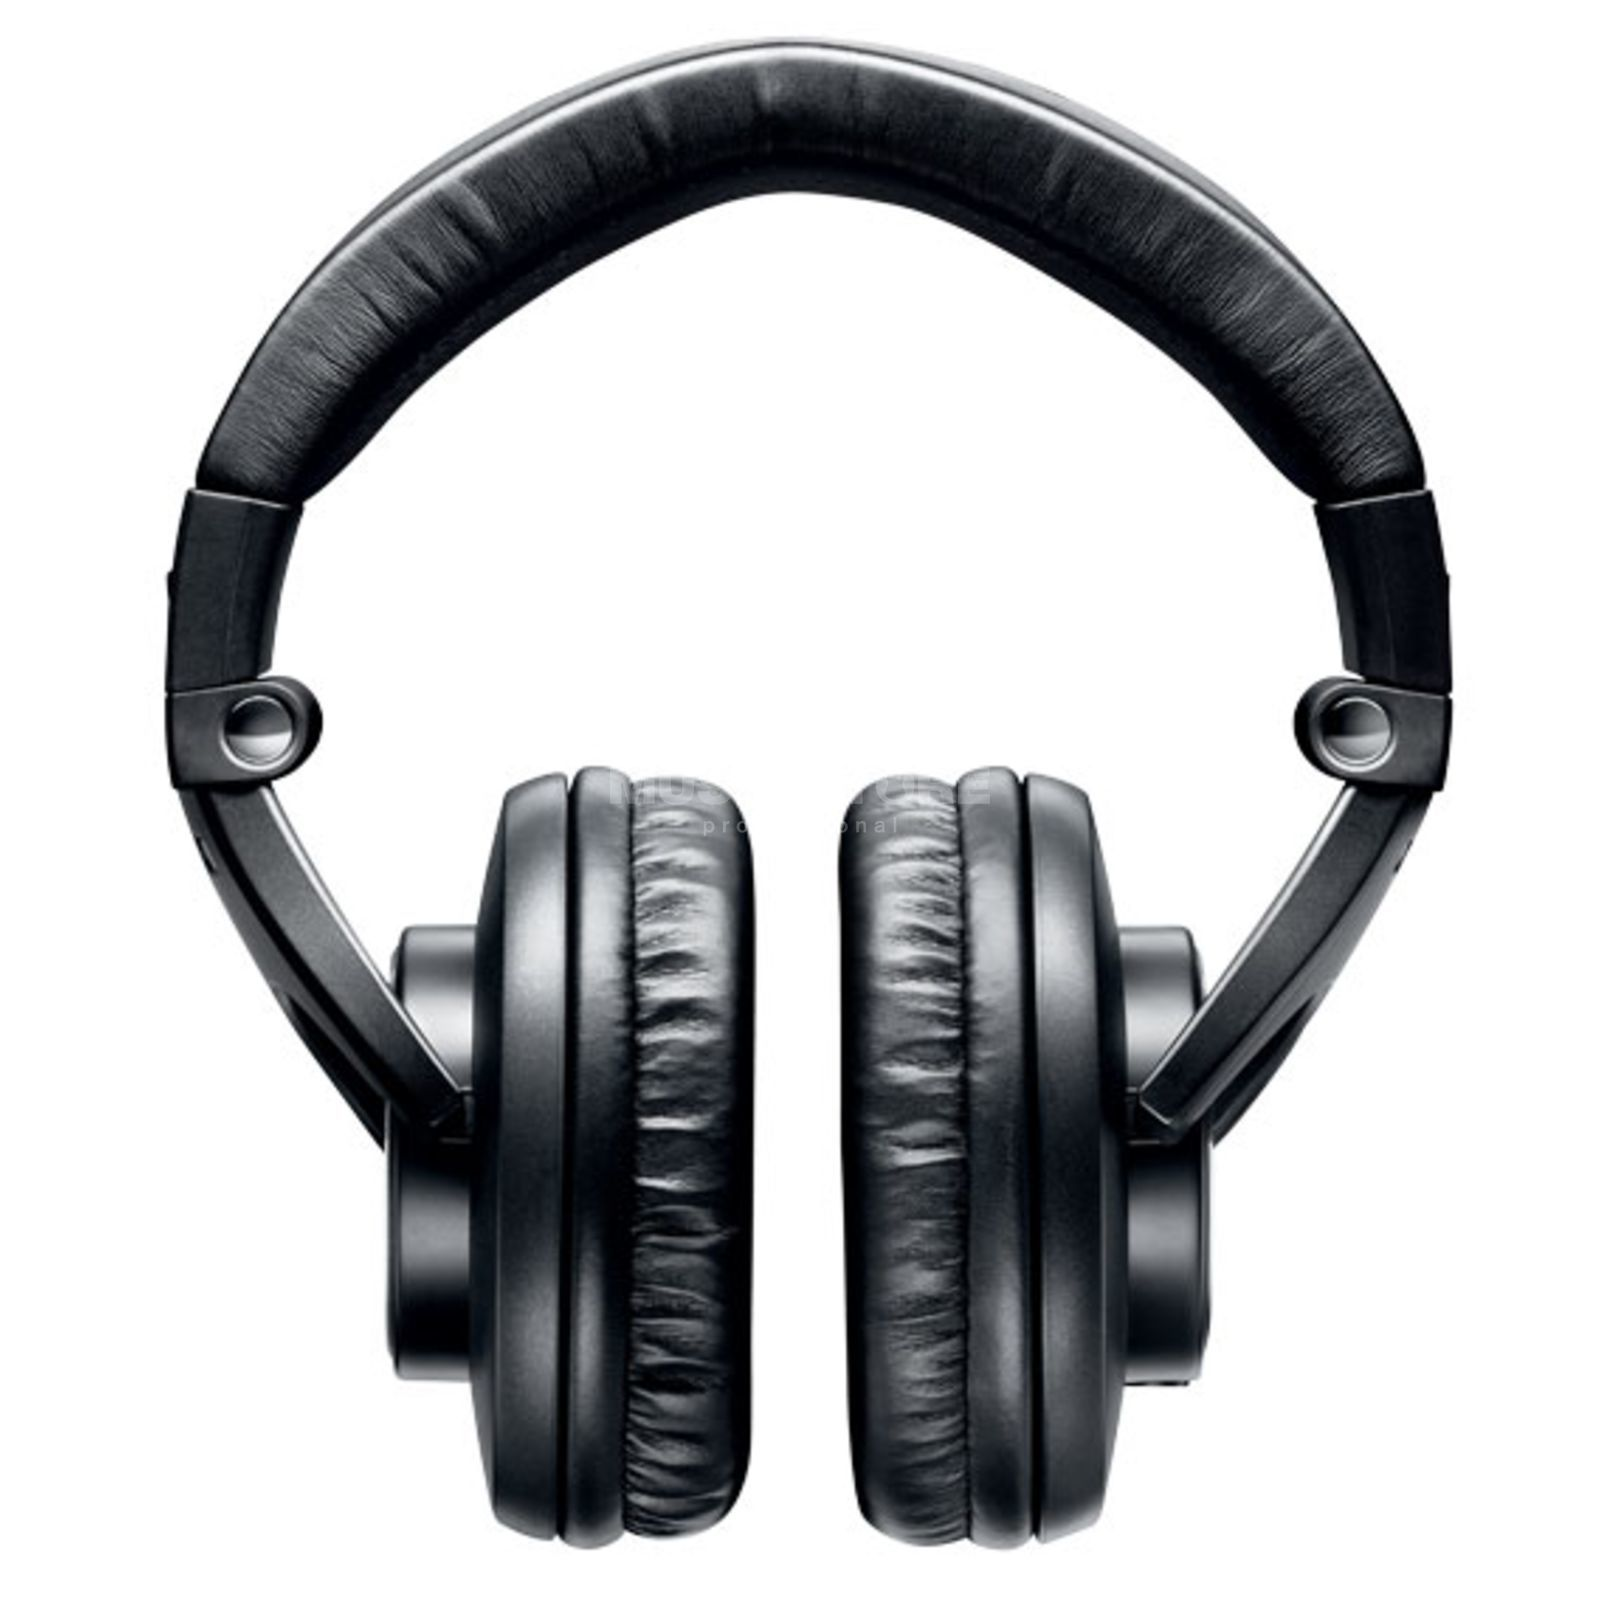 Shure SRH840 Reference Studio Headphones Product Image